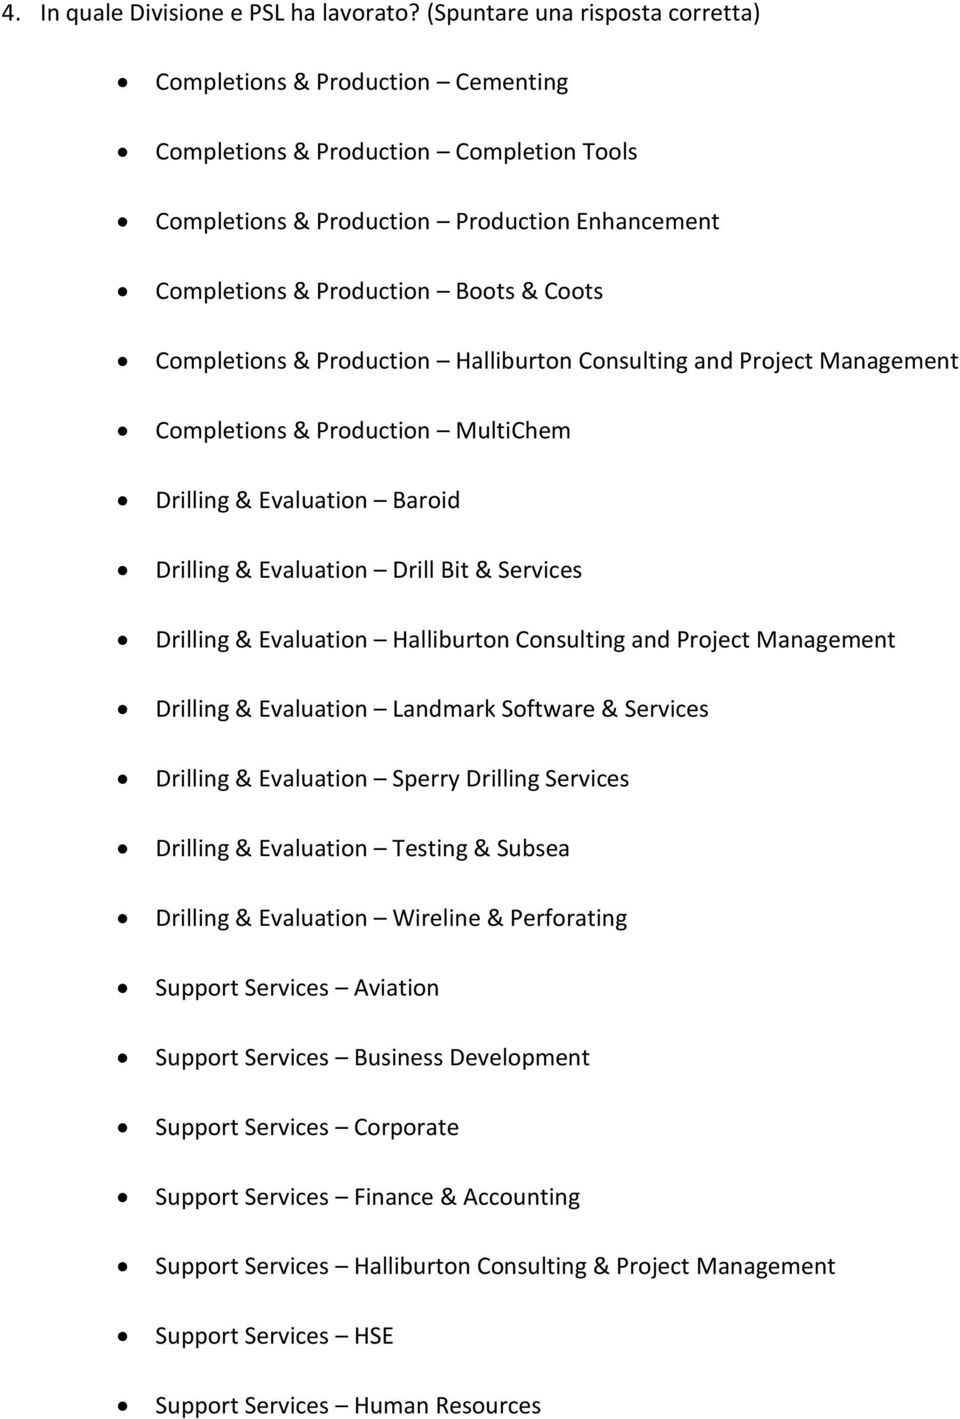 Completions & Production Halliburton Consulting and Project Management Completions & Production MultiChem Drilling & Evaluation Baroid Drilling & Evaluation Drill Bit & Services Drilling & Evaluation